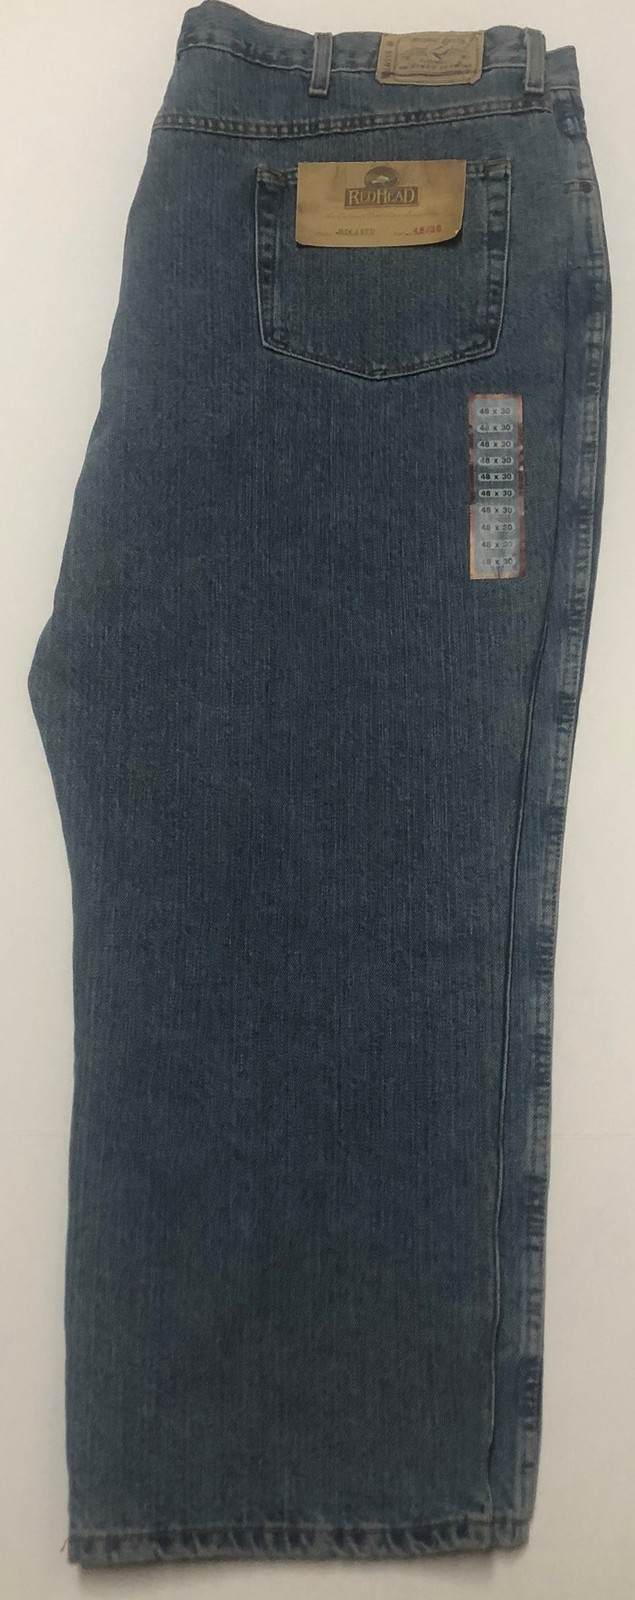 Red Head Relaxed Men's Blue Jeans Sz 48/30 Medium Stone Wash image 3